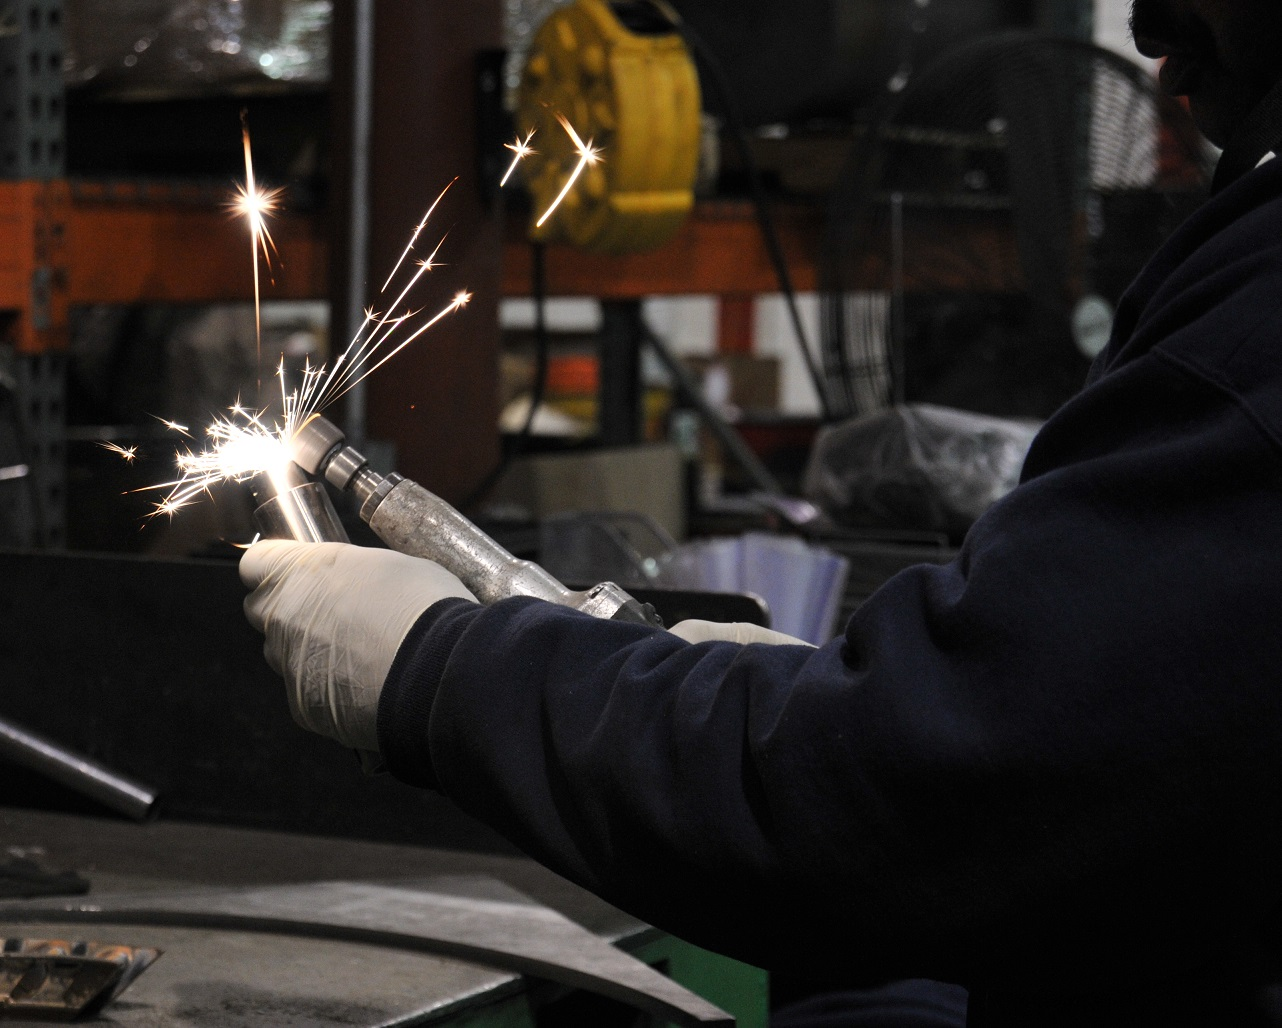 About Dynamic Metal Services - Dynamic Metal Services